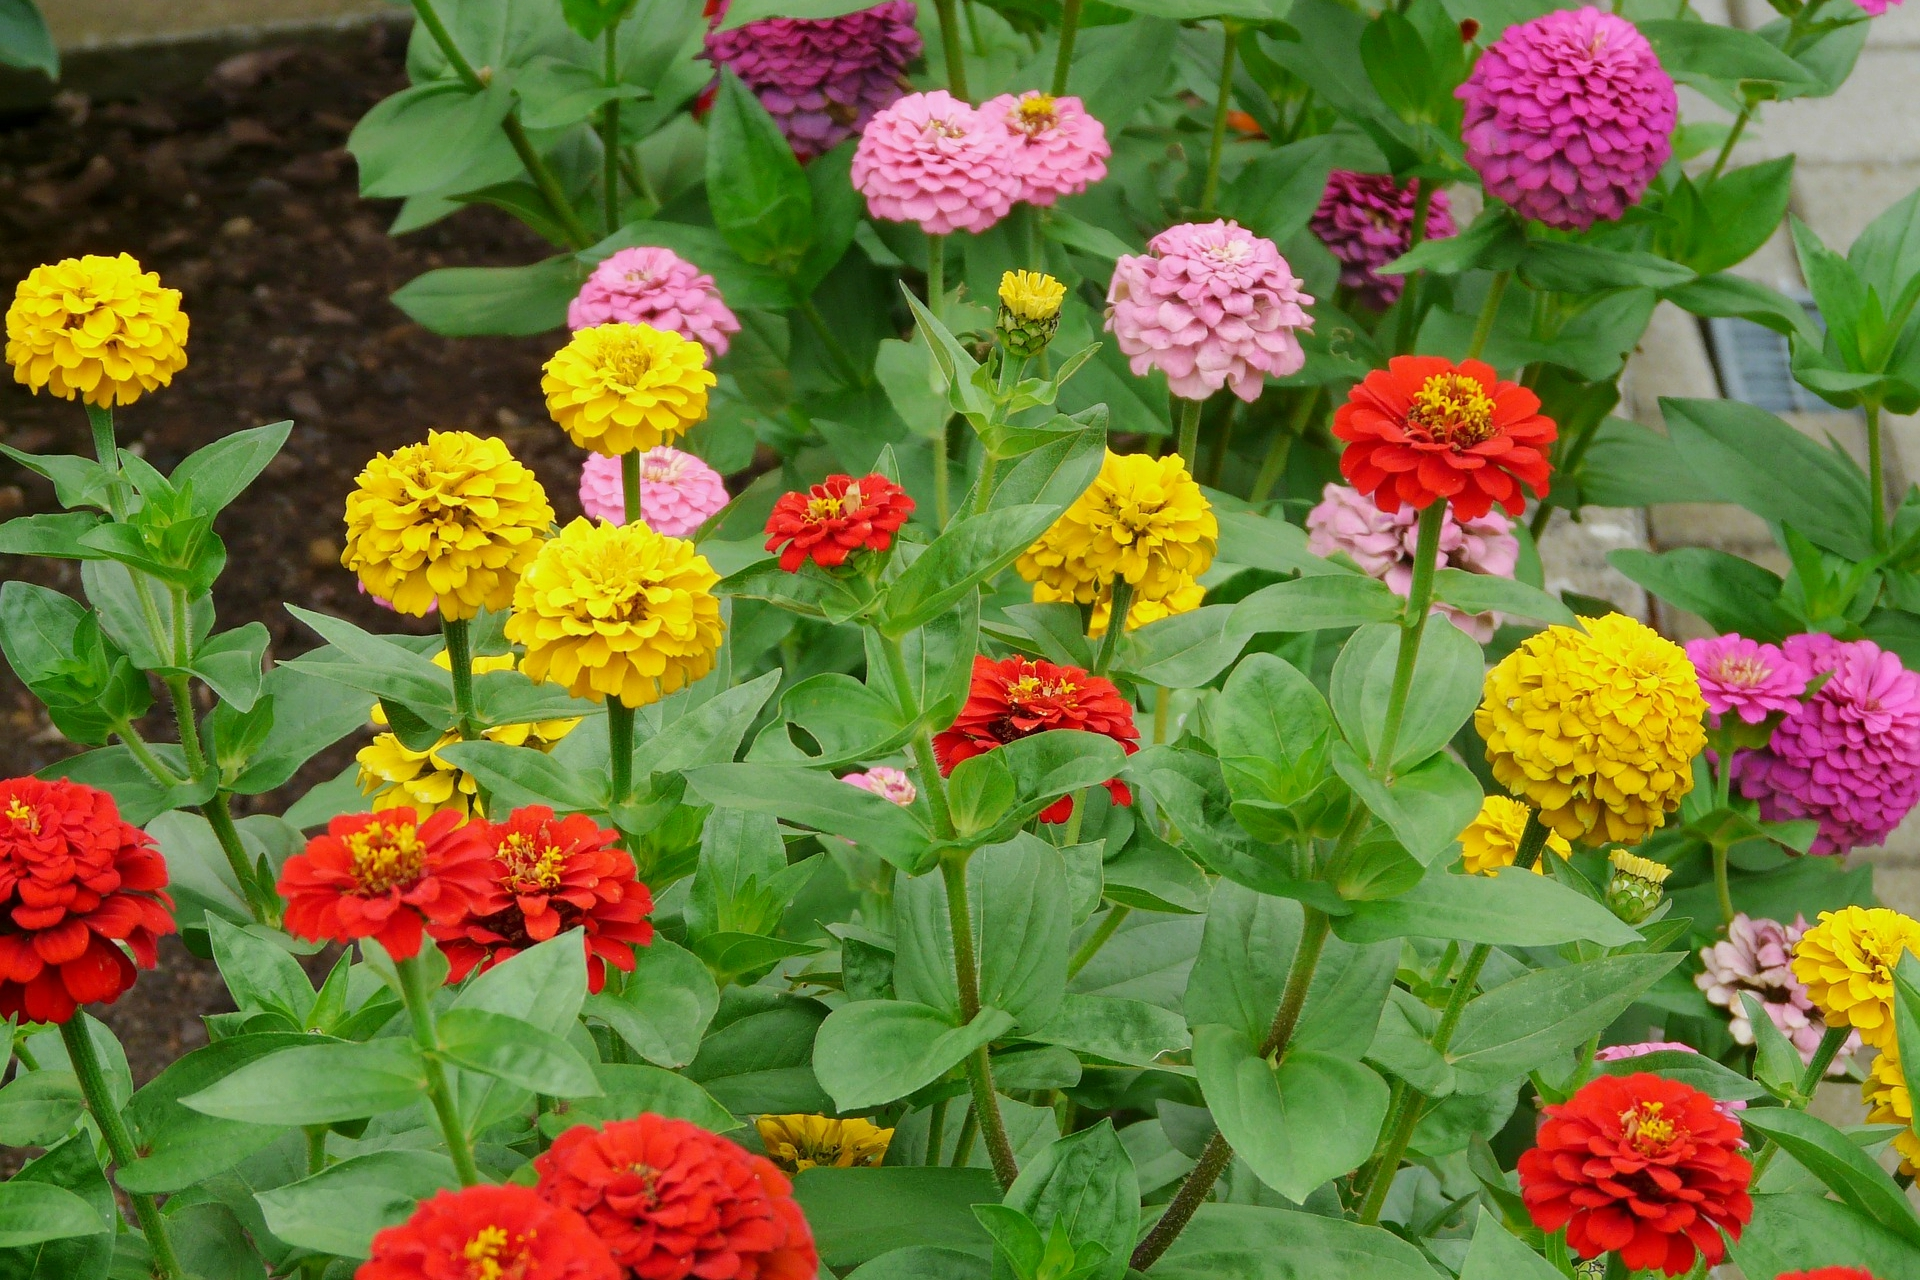 Zinnias How To Plant Grow And Care For Zinnia Flowers The Old